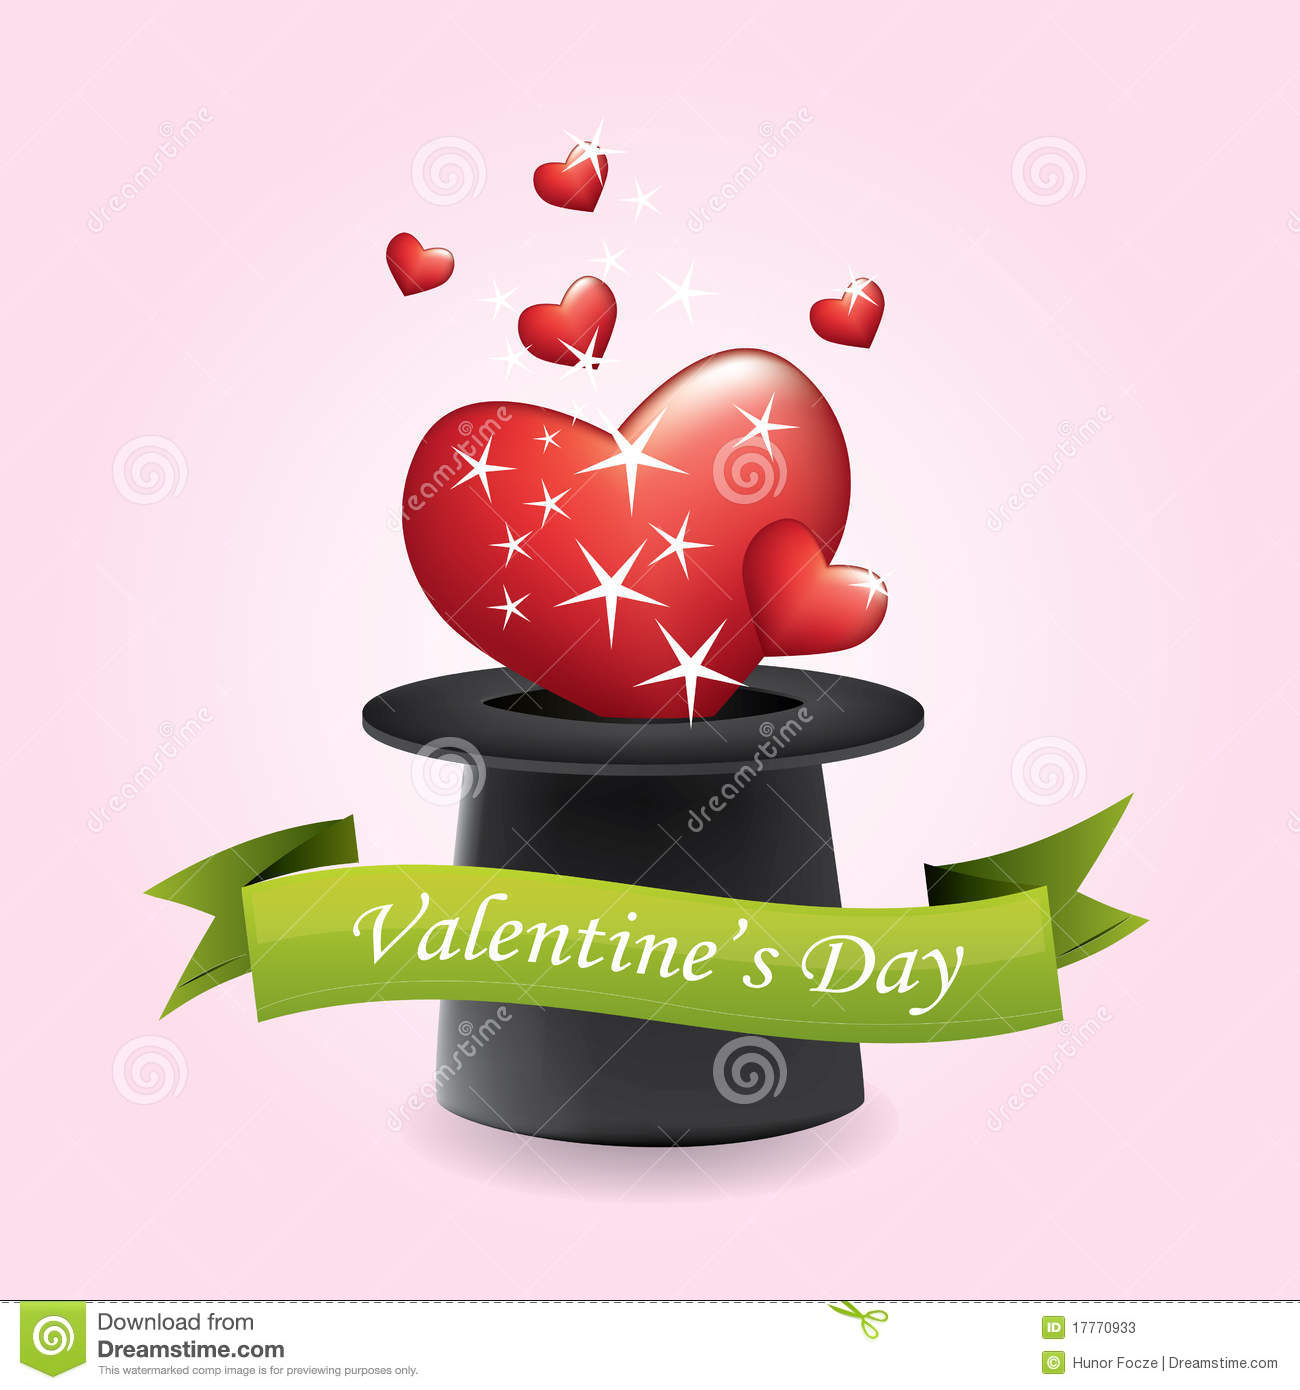 fc8a41aa247 Magic Hat And Hearts - Valentine s Day Stock Vector - Illustration ...